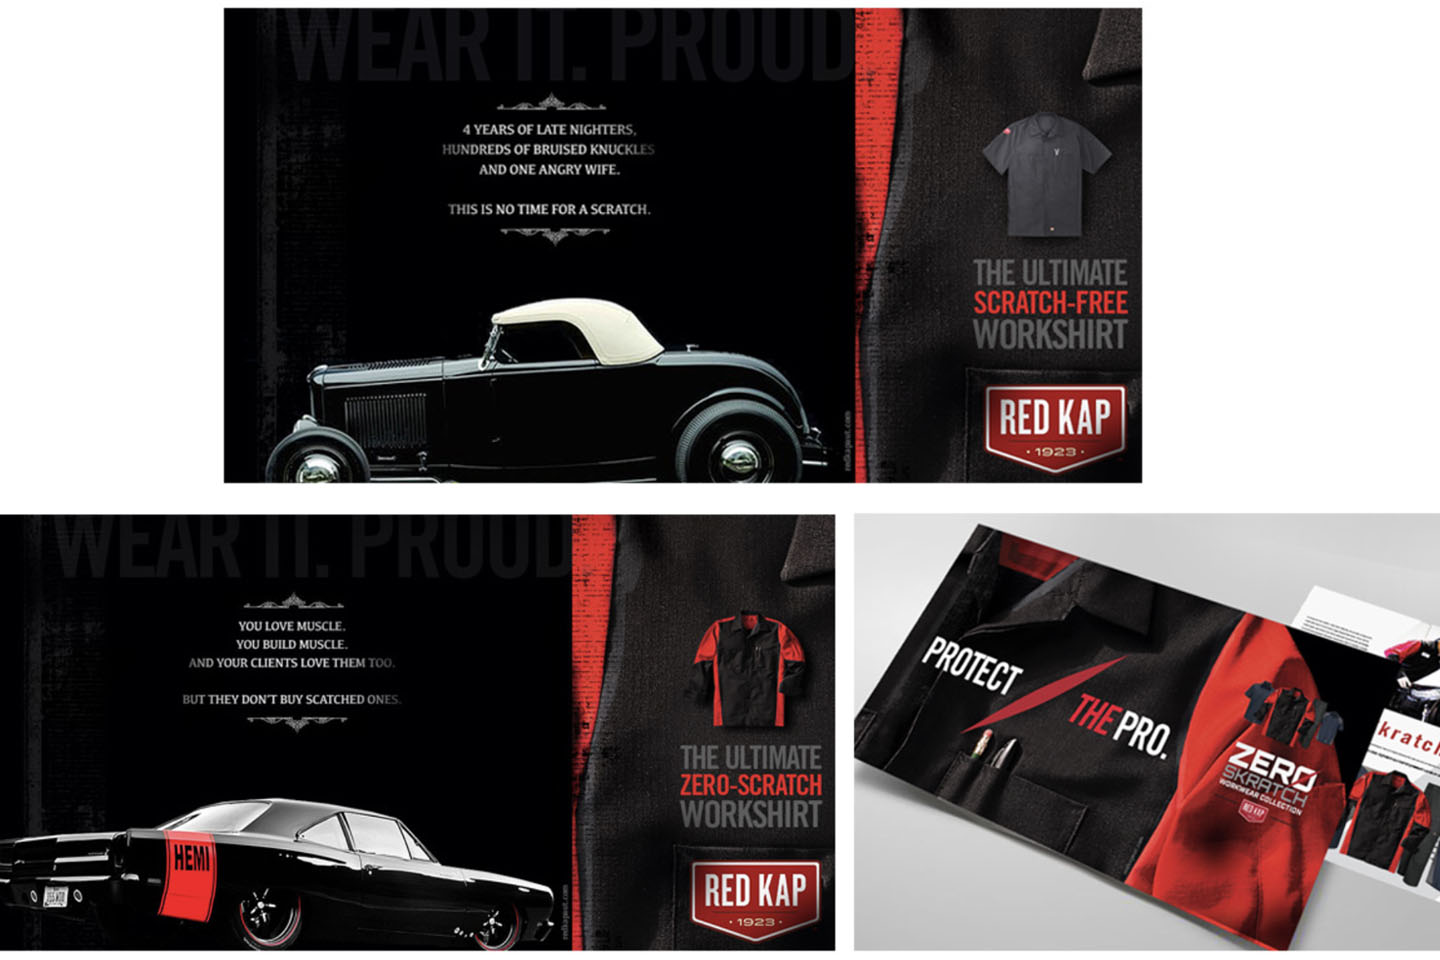 Red Kap zero scratch brand campaign to promote workwear shirt launch